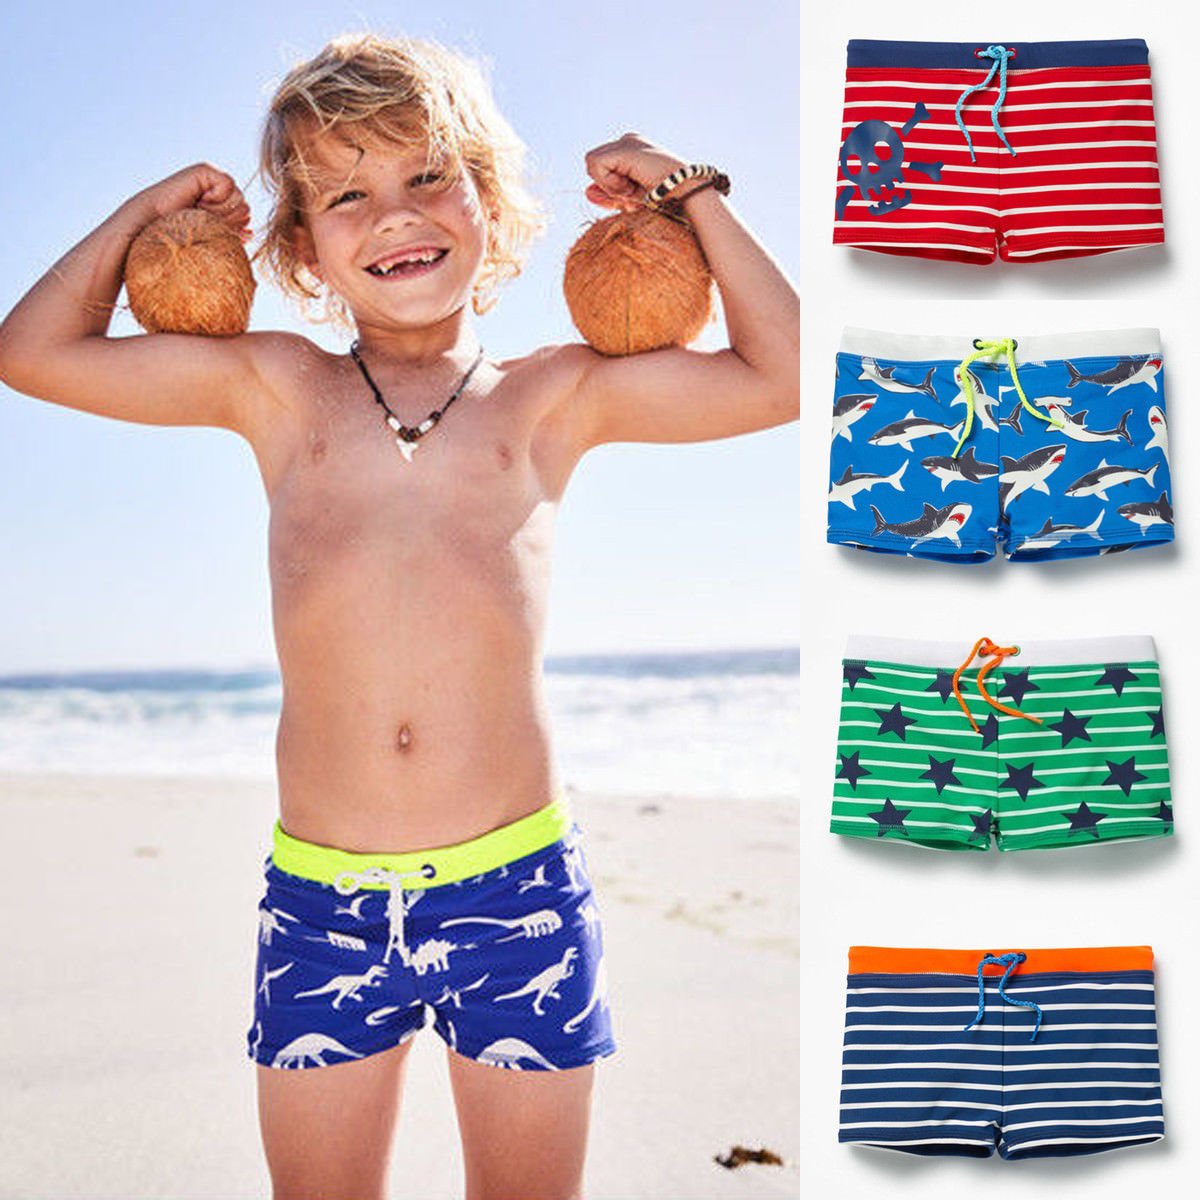 KIOT156 Mens Quick Dry Swim Trunks Colorful Christmas Perfect Penguin Beach Shorts